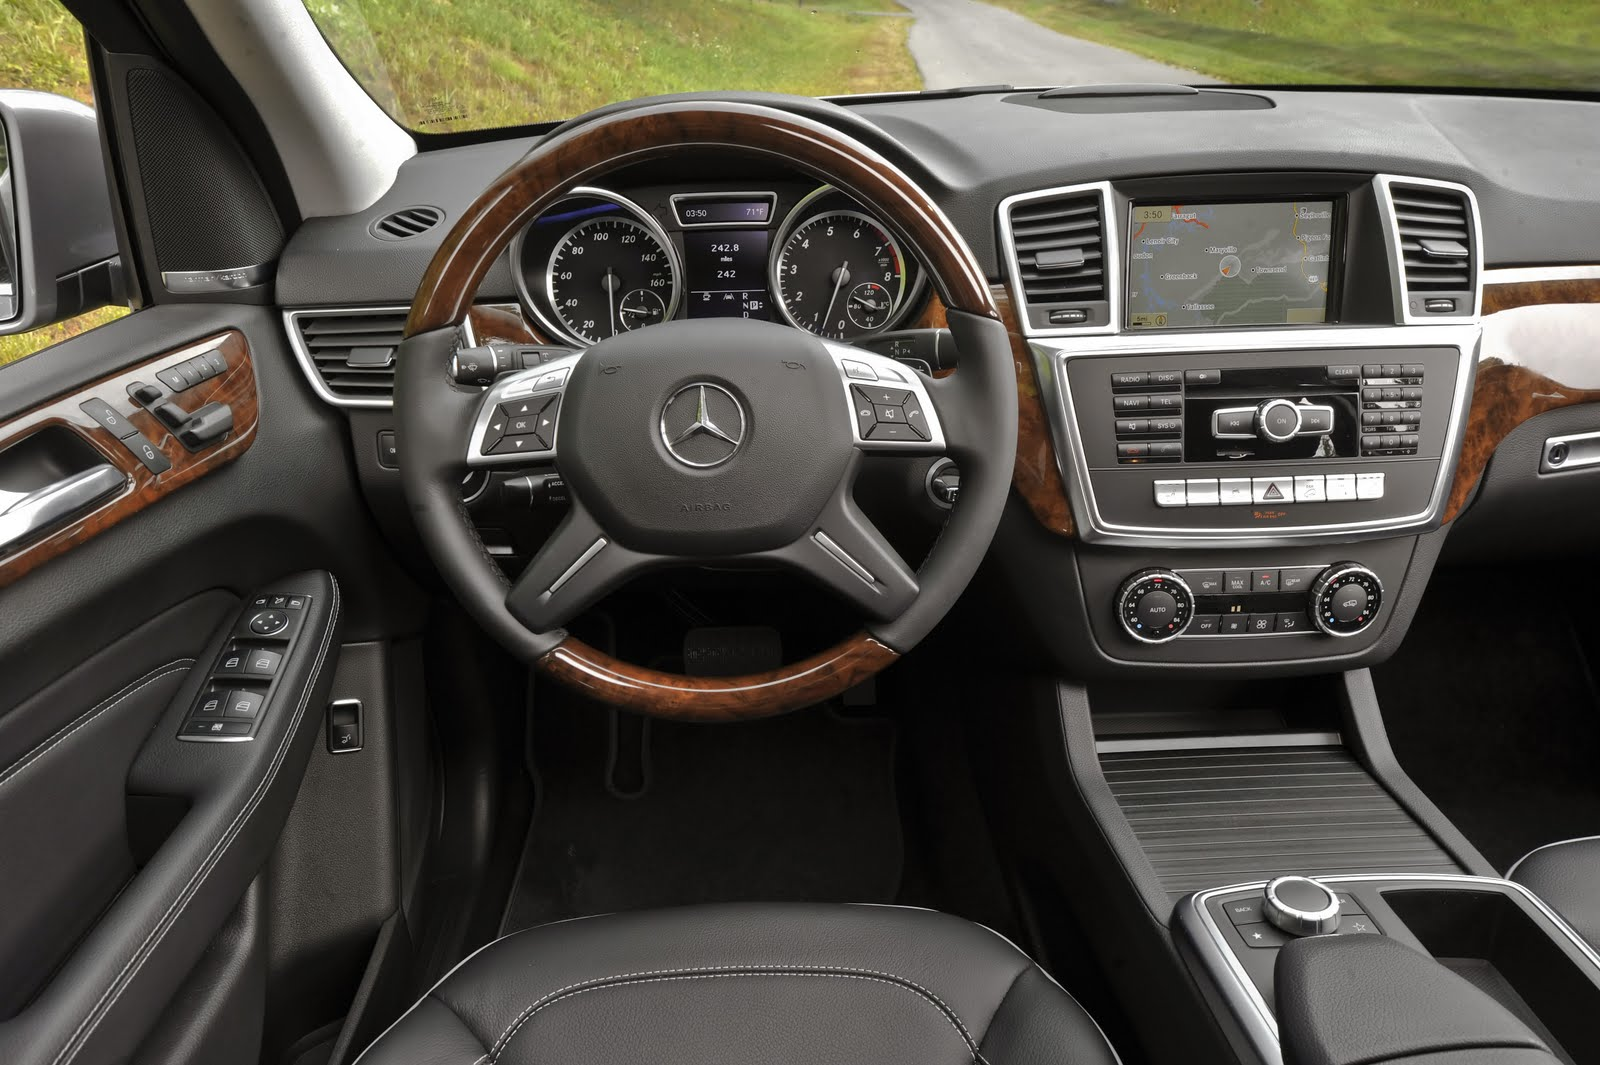 2012 mercedes m class ml350 review abundant technology for a safer ride w off road video